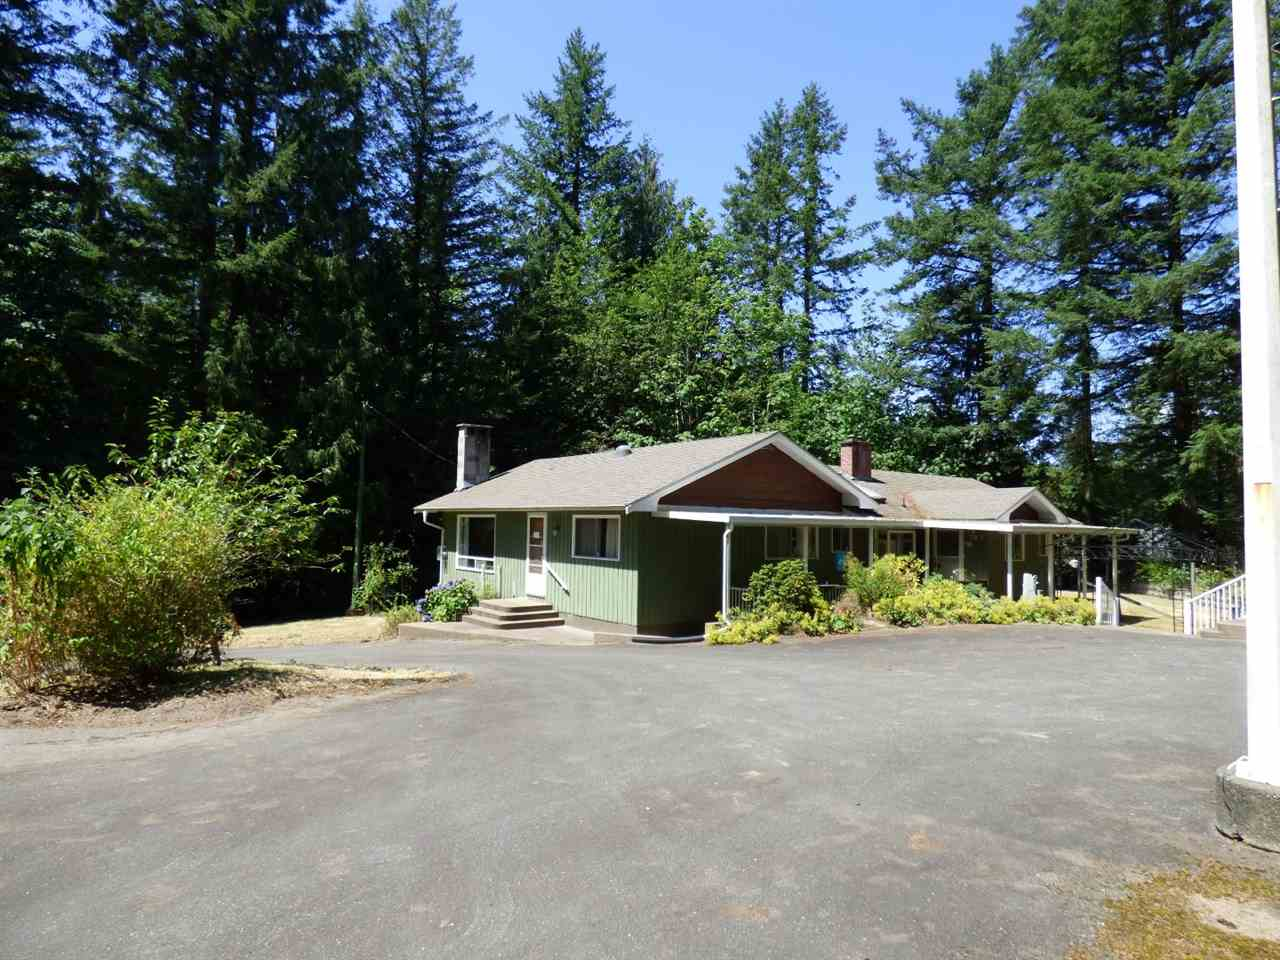 Main Photo: 3636 COLUMBIA VALLEY Road: Cultus Lake House for sale : MLS® # R2189345